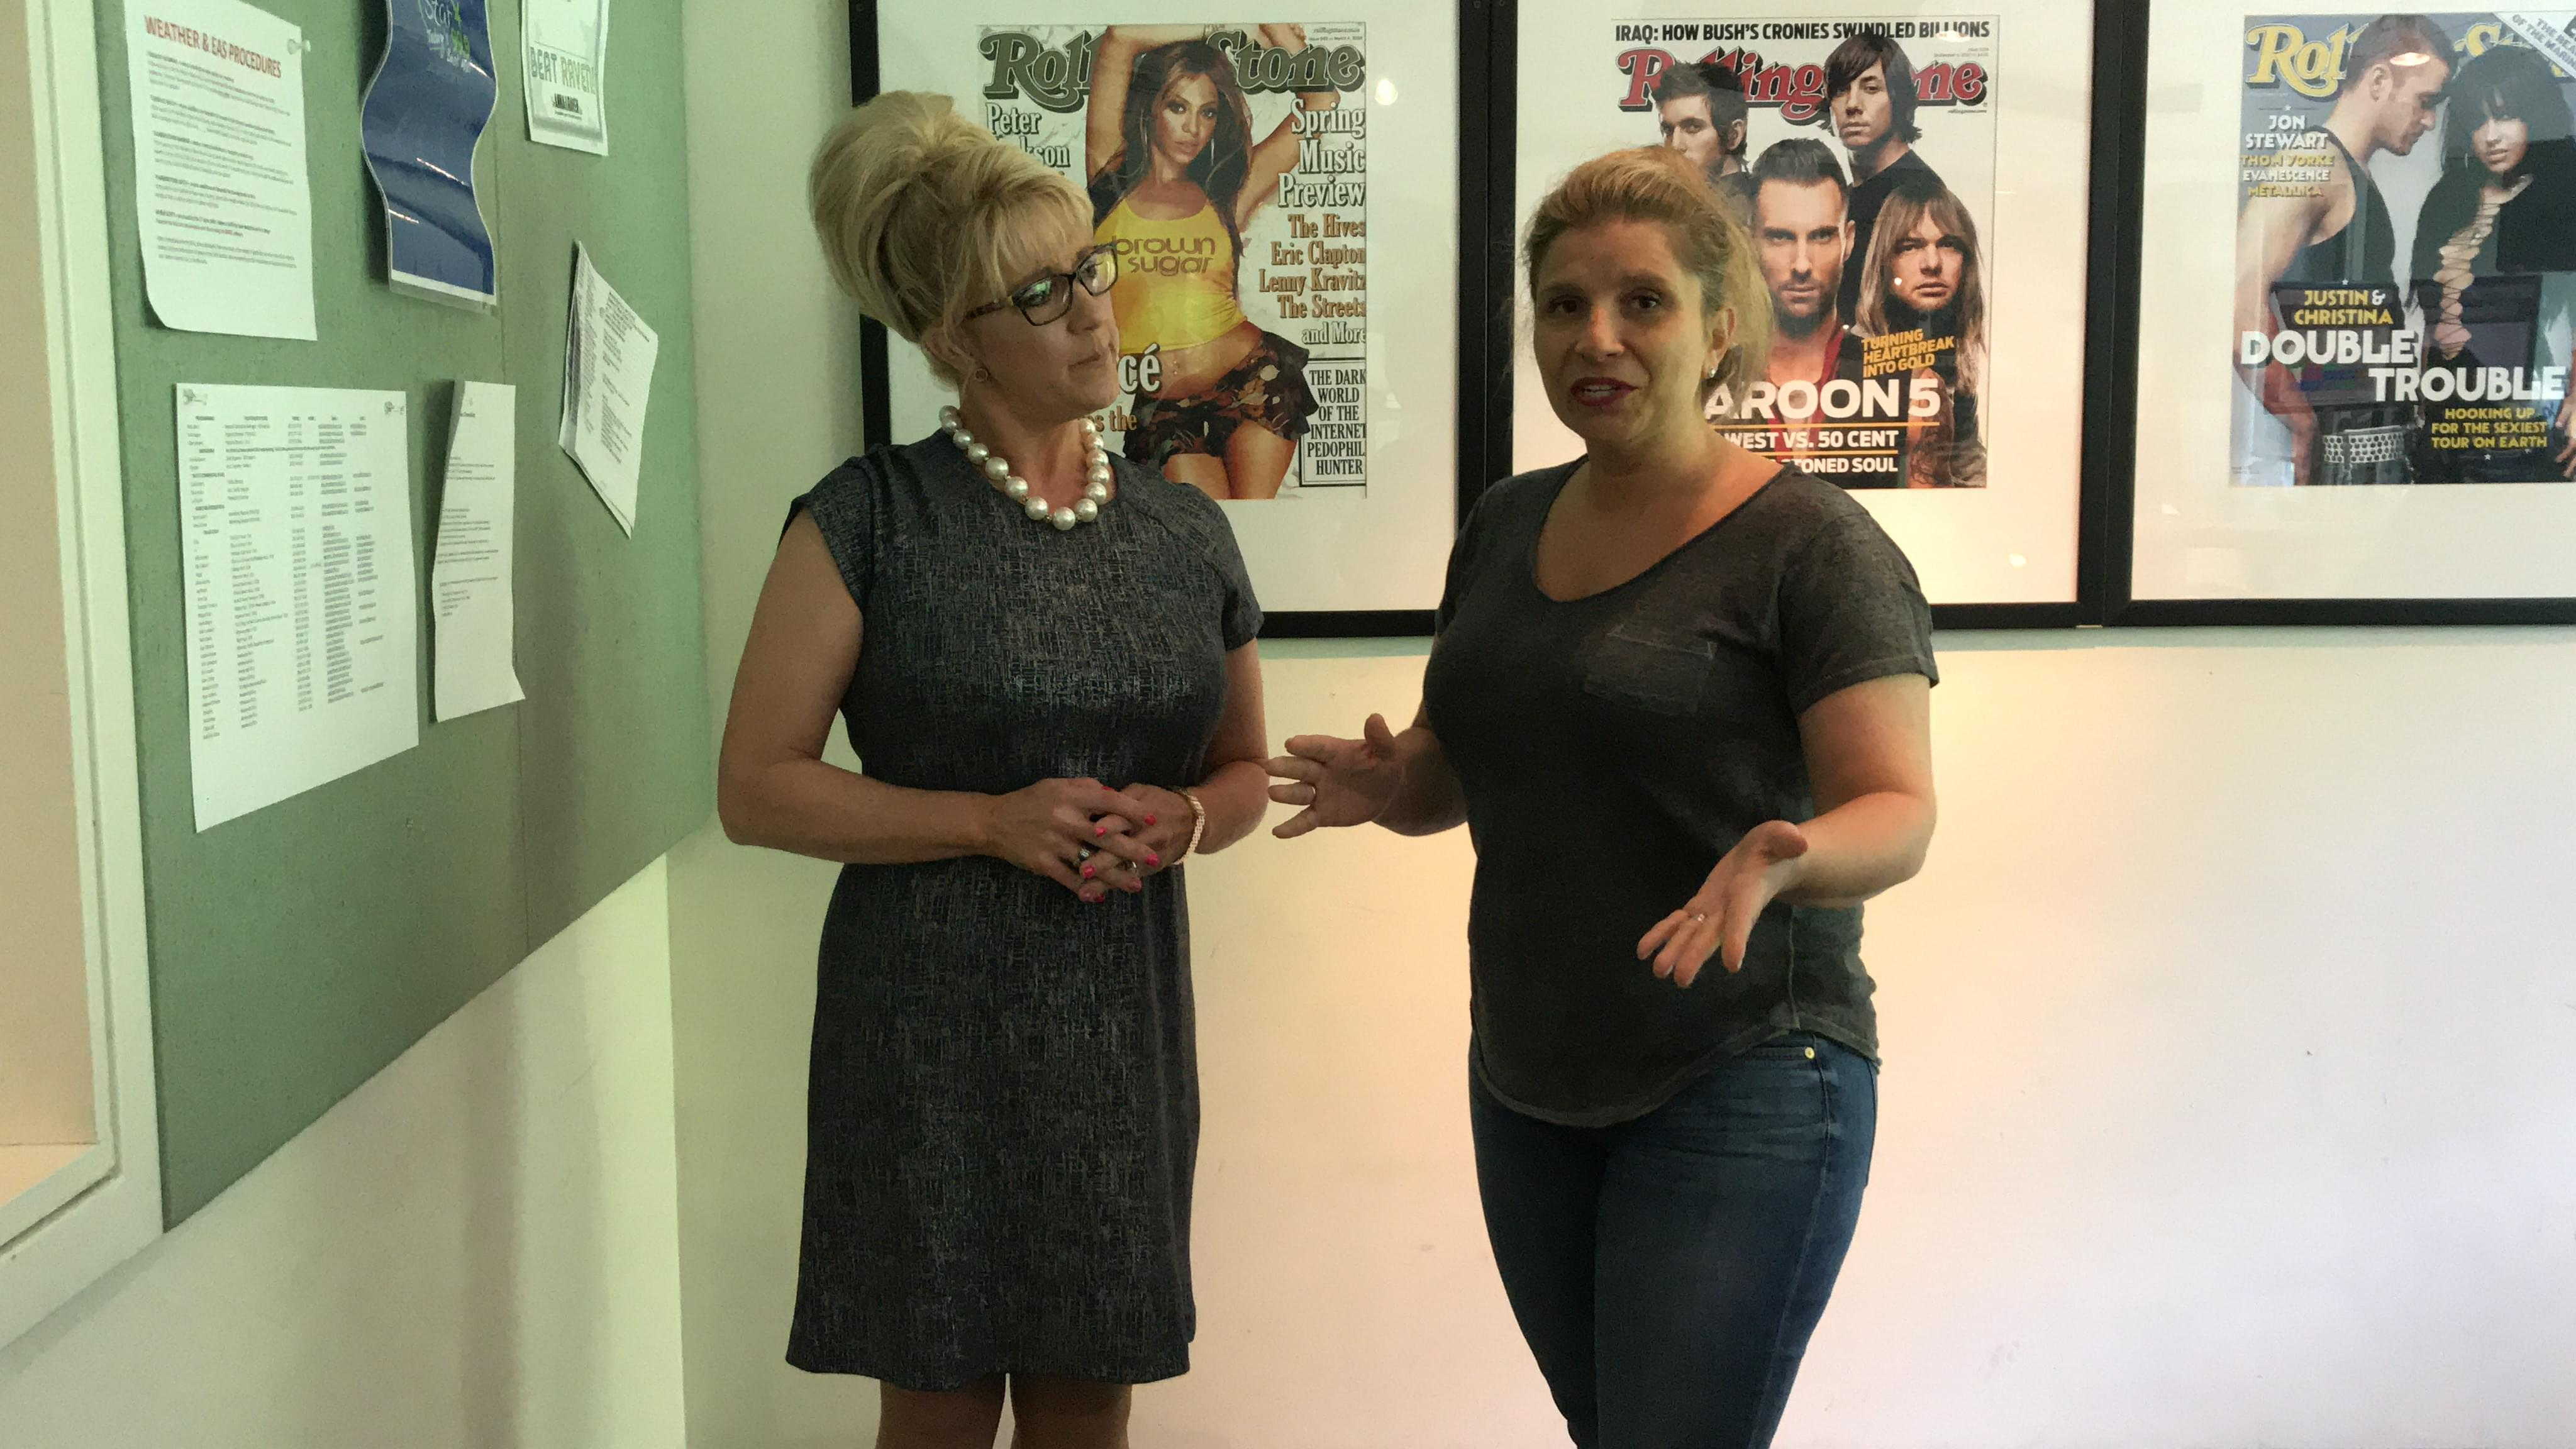 60 Seconds Behind the Scenes- Karen Thomas shows us the proper length of dresses